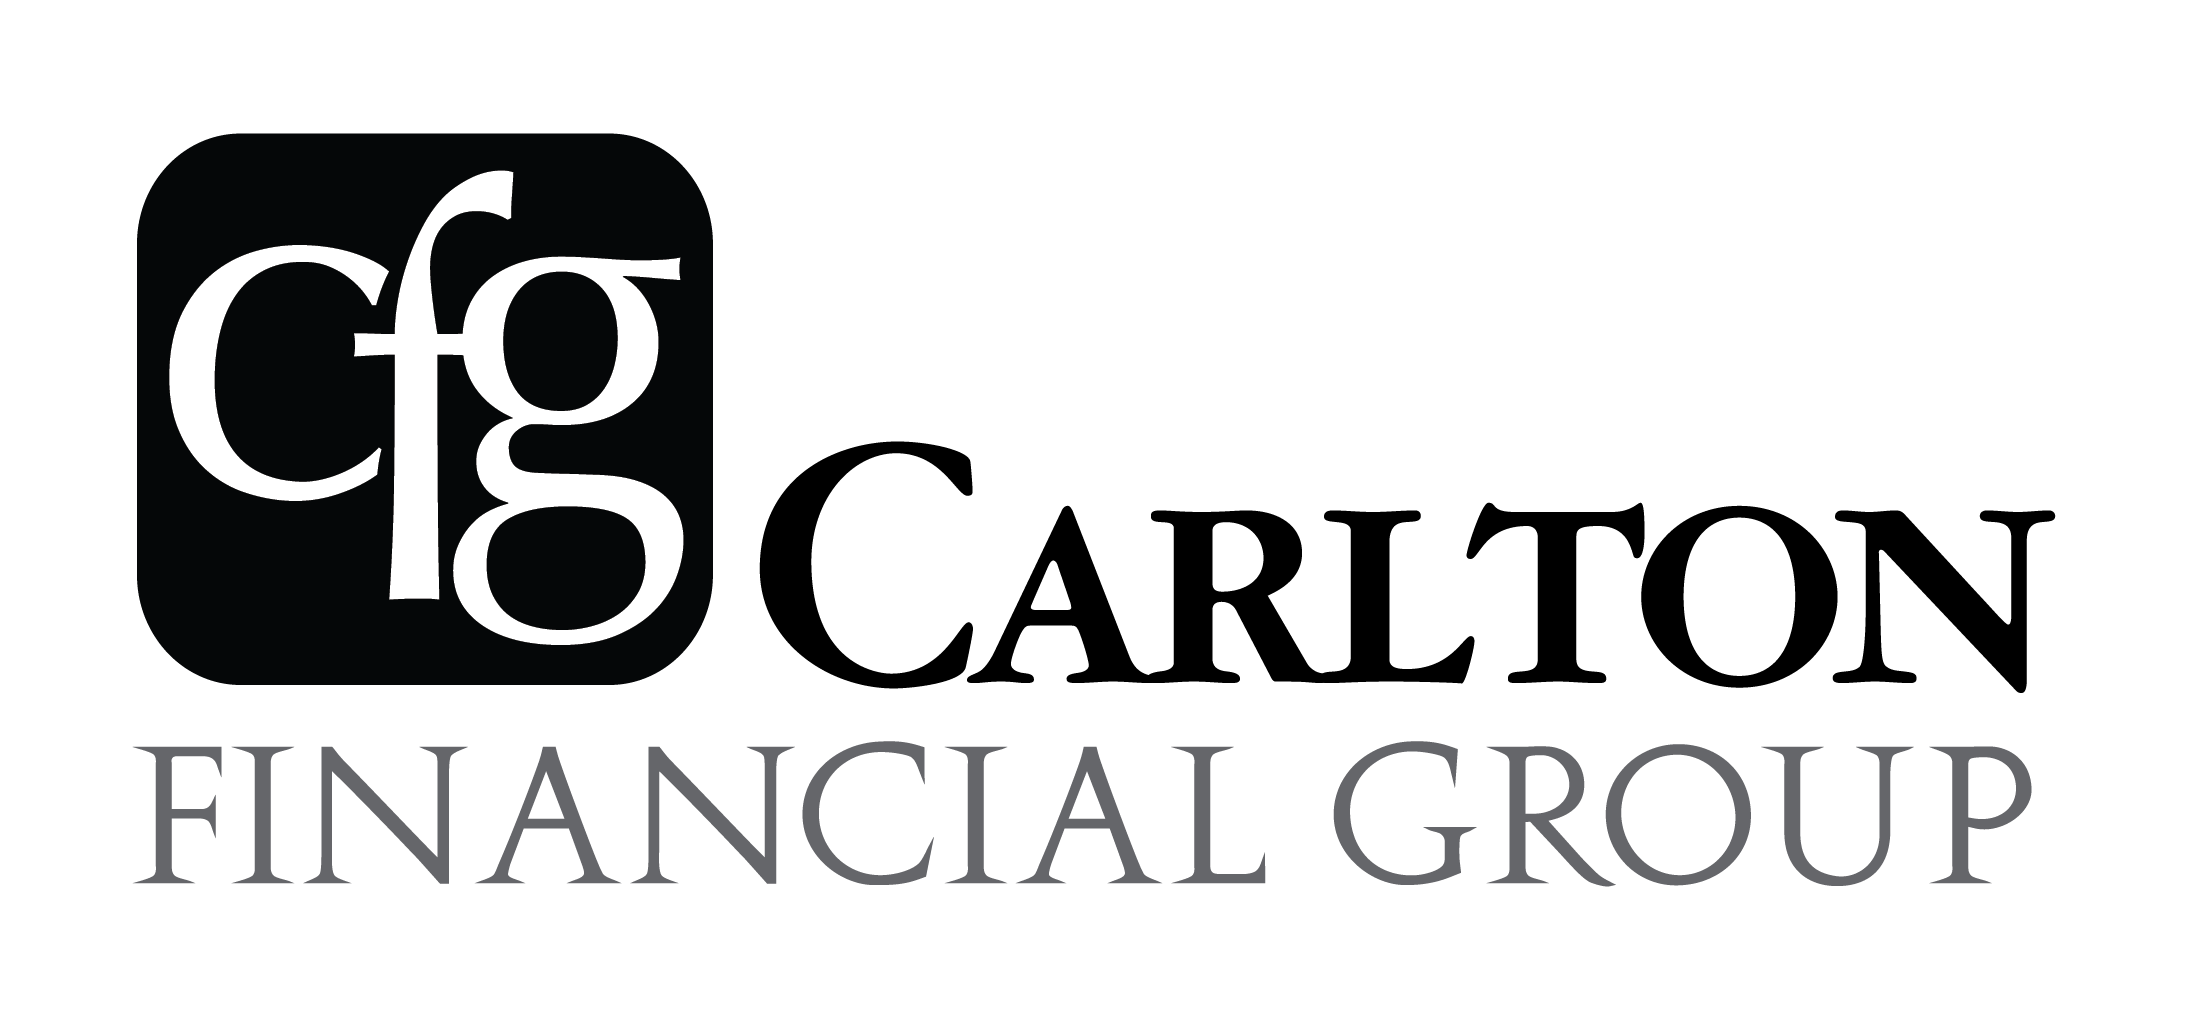 Carlton Financial Group